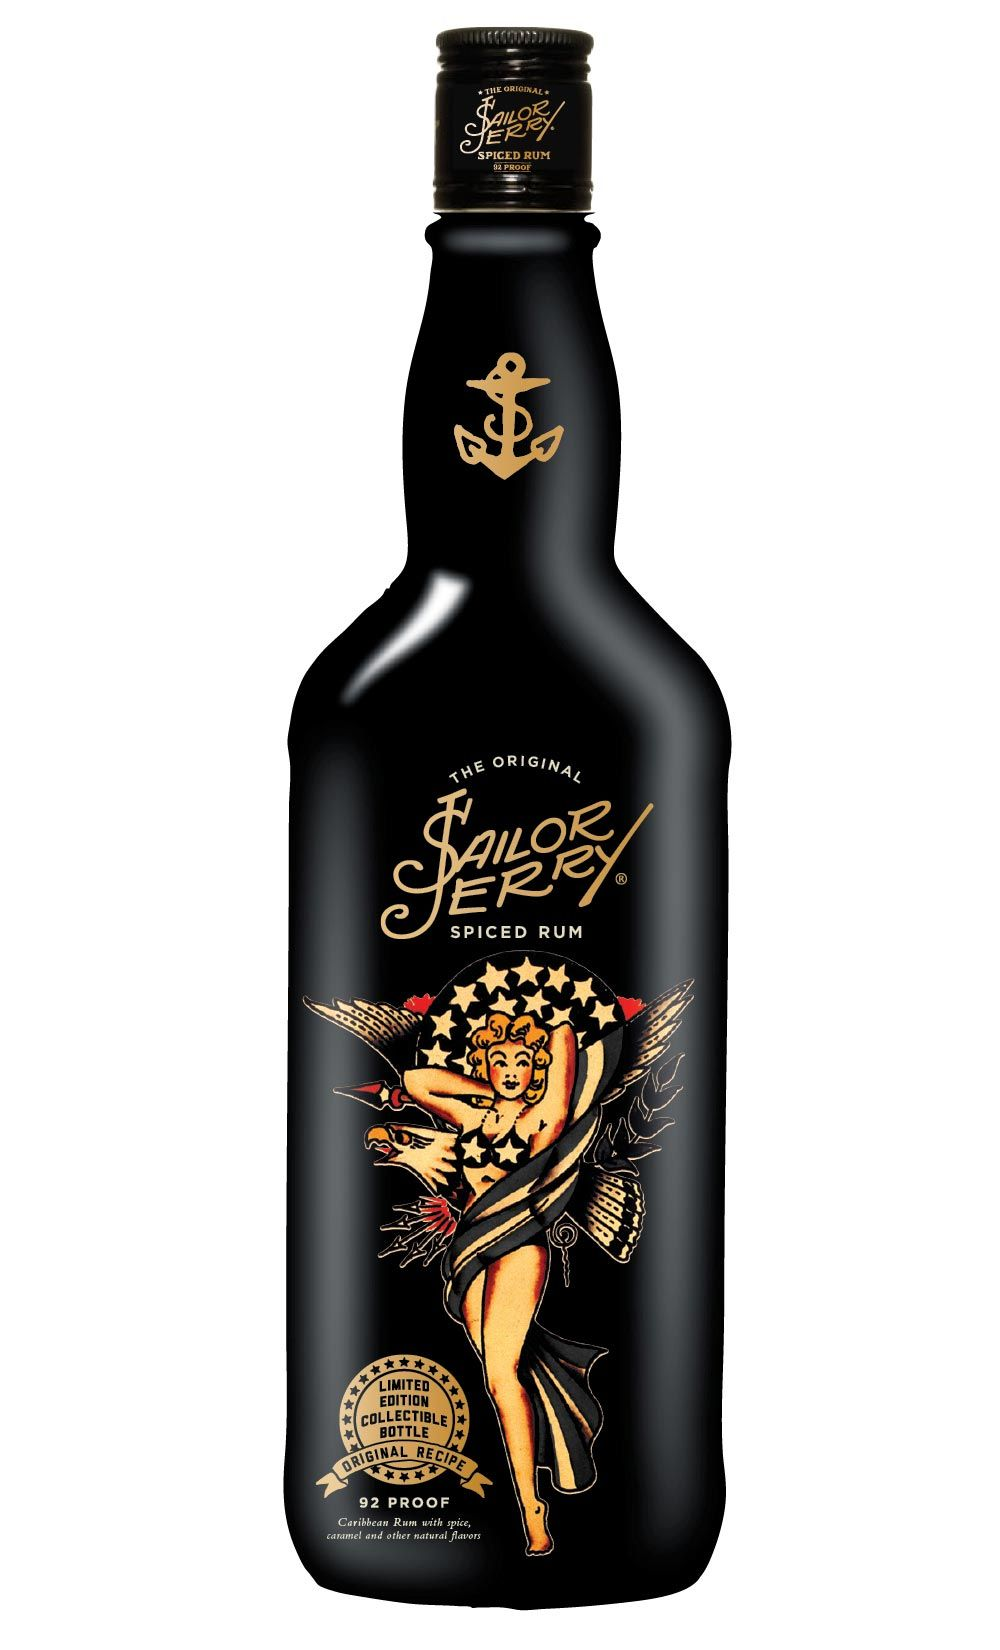 be37e9198 Sailor Jerry's Rum | Sailor Jerry Launches Limited Edition Bottle for 4th  of July - Chilled .